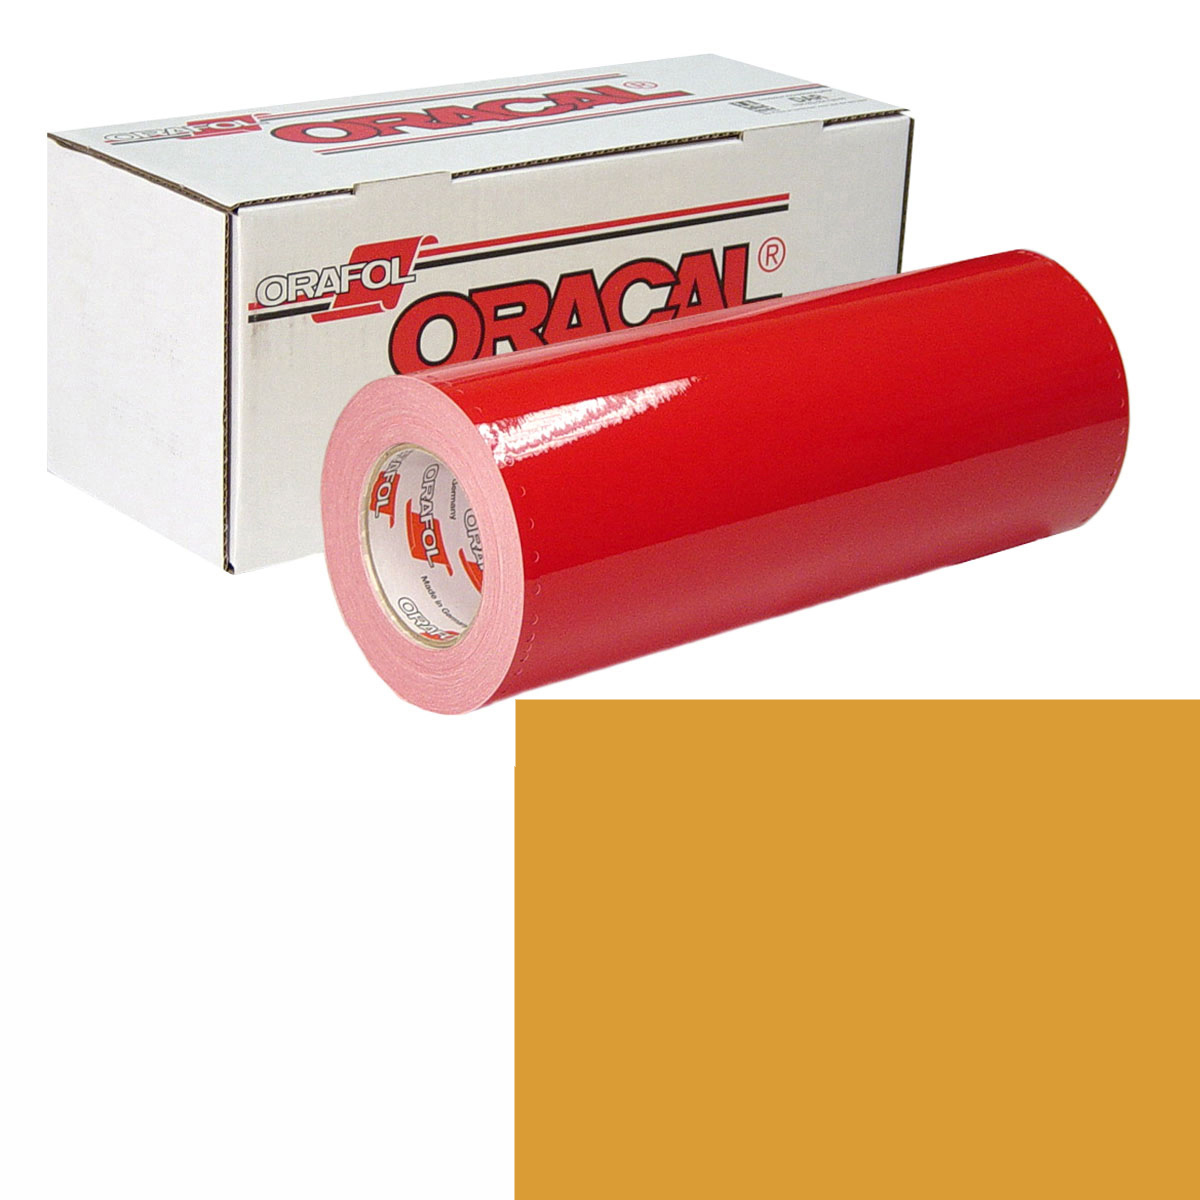 ORACAL 951 Unp 24In X 50Yd 820 Golden Brown